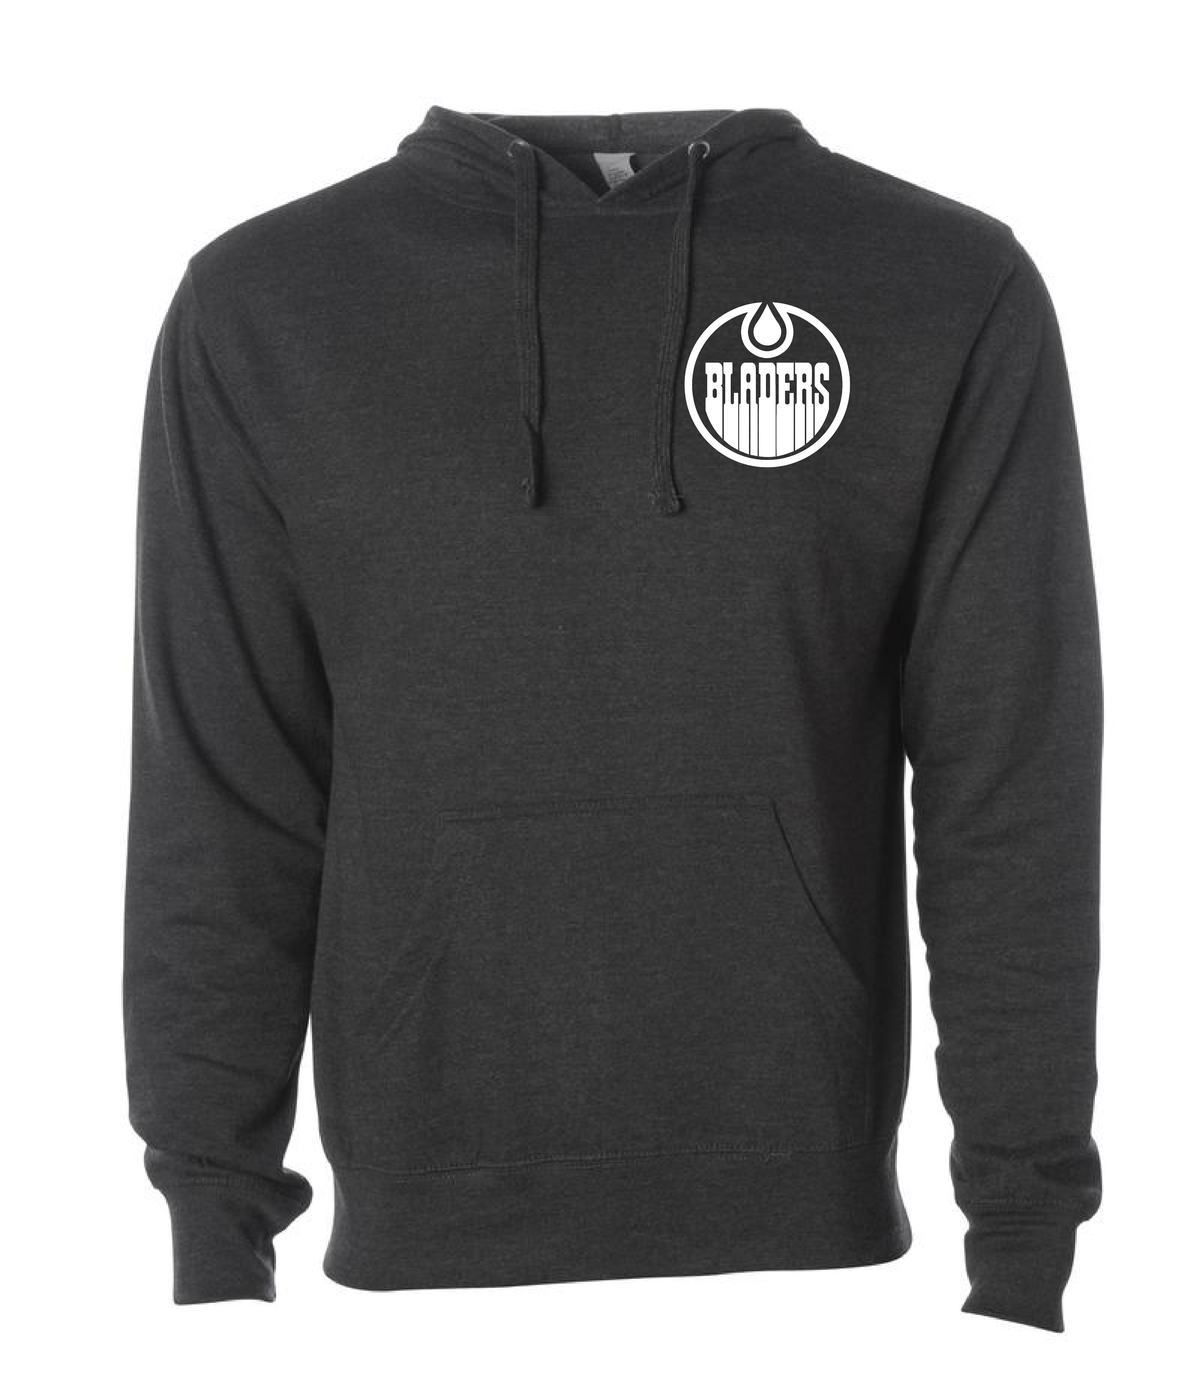 Image of Bladers Pullover Hoodie - Charcoal Heather - Unisex - Preorder